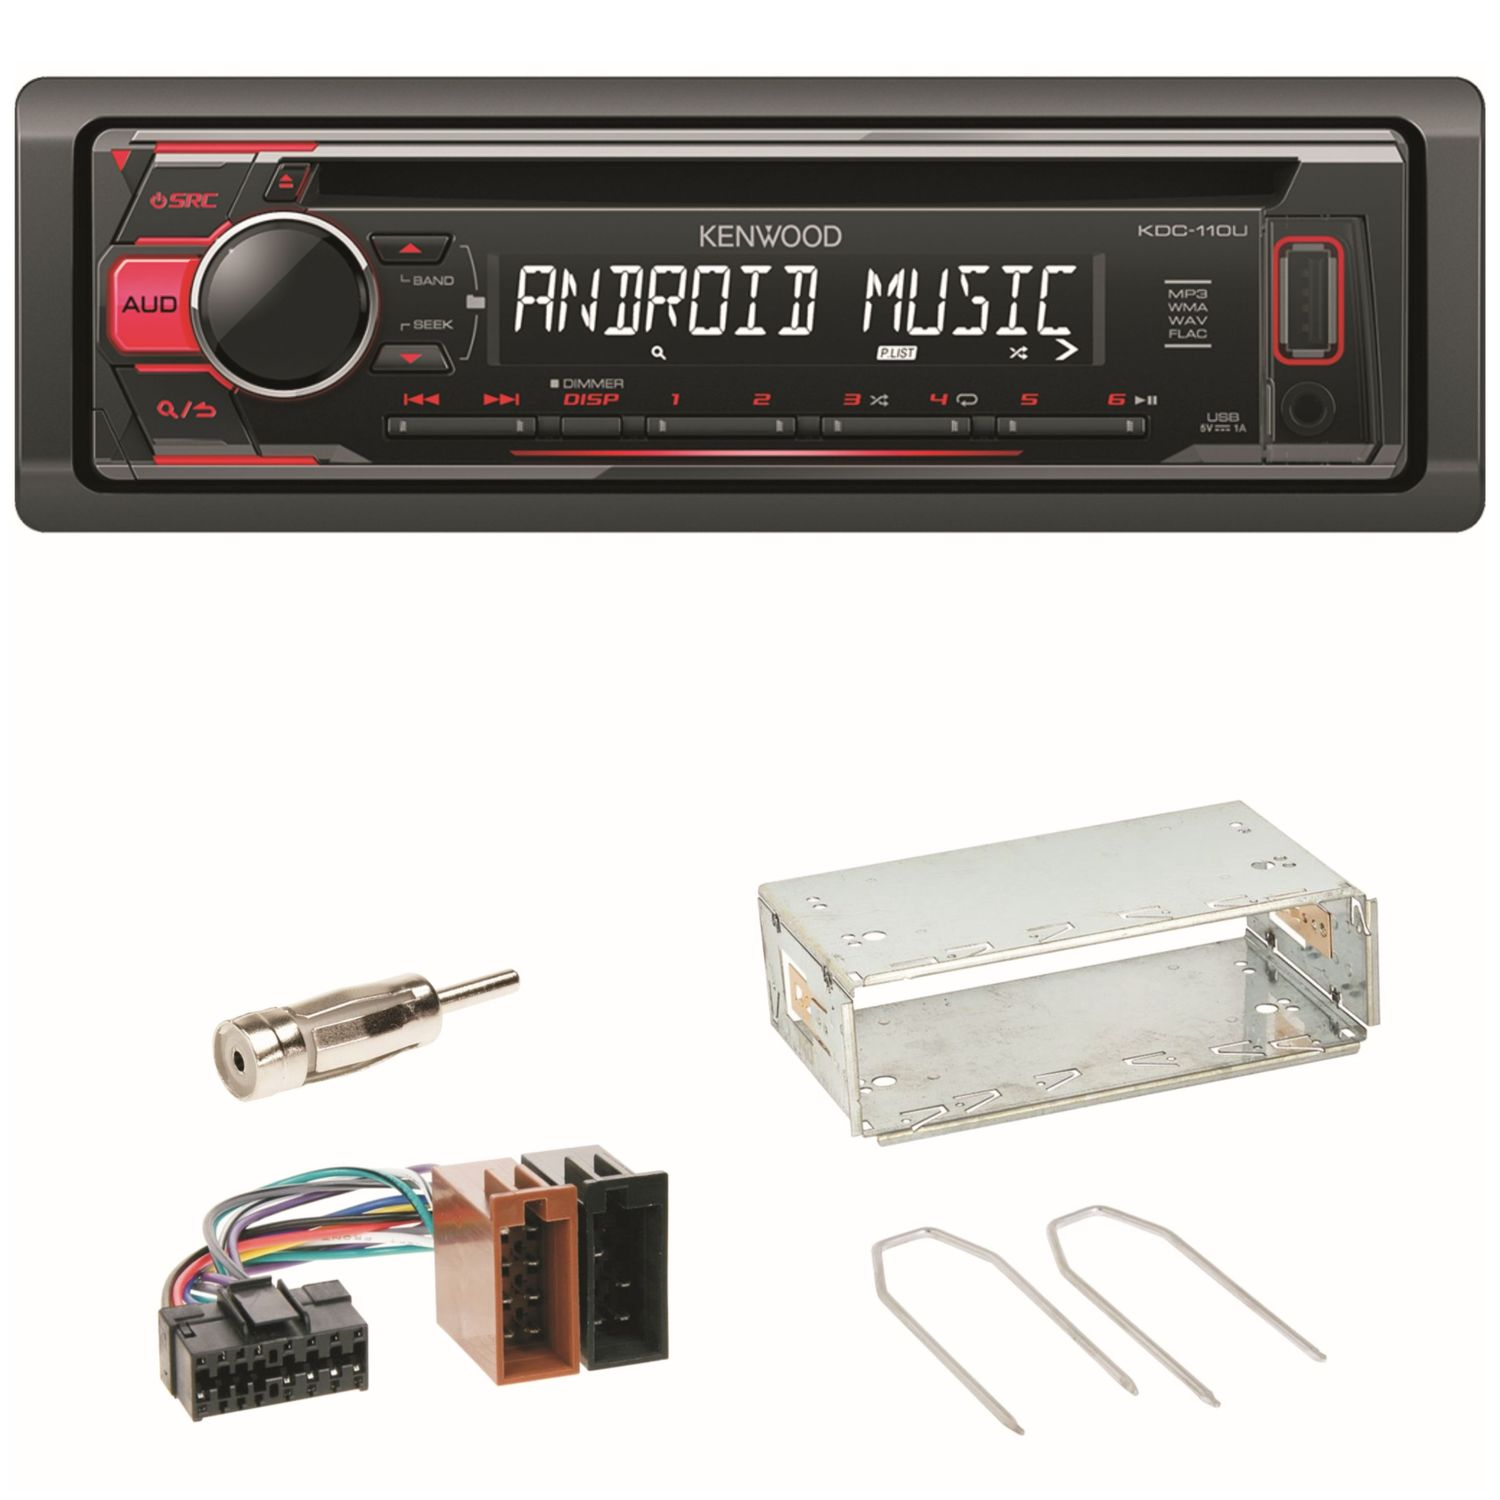 kdc 110ur autoradio usb flac mp3 cd einbauset f r renault clio twingo 1 2. Black Bedroom Furniture Sets. Home Design Ideas